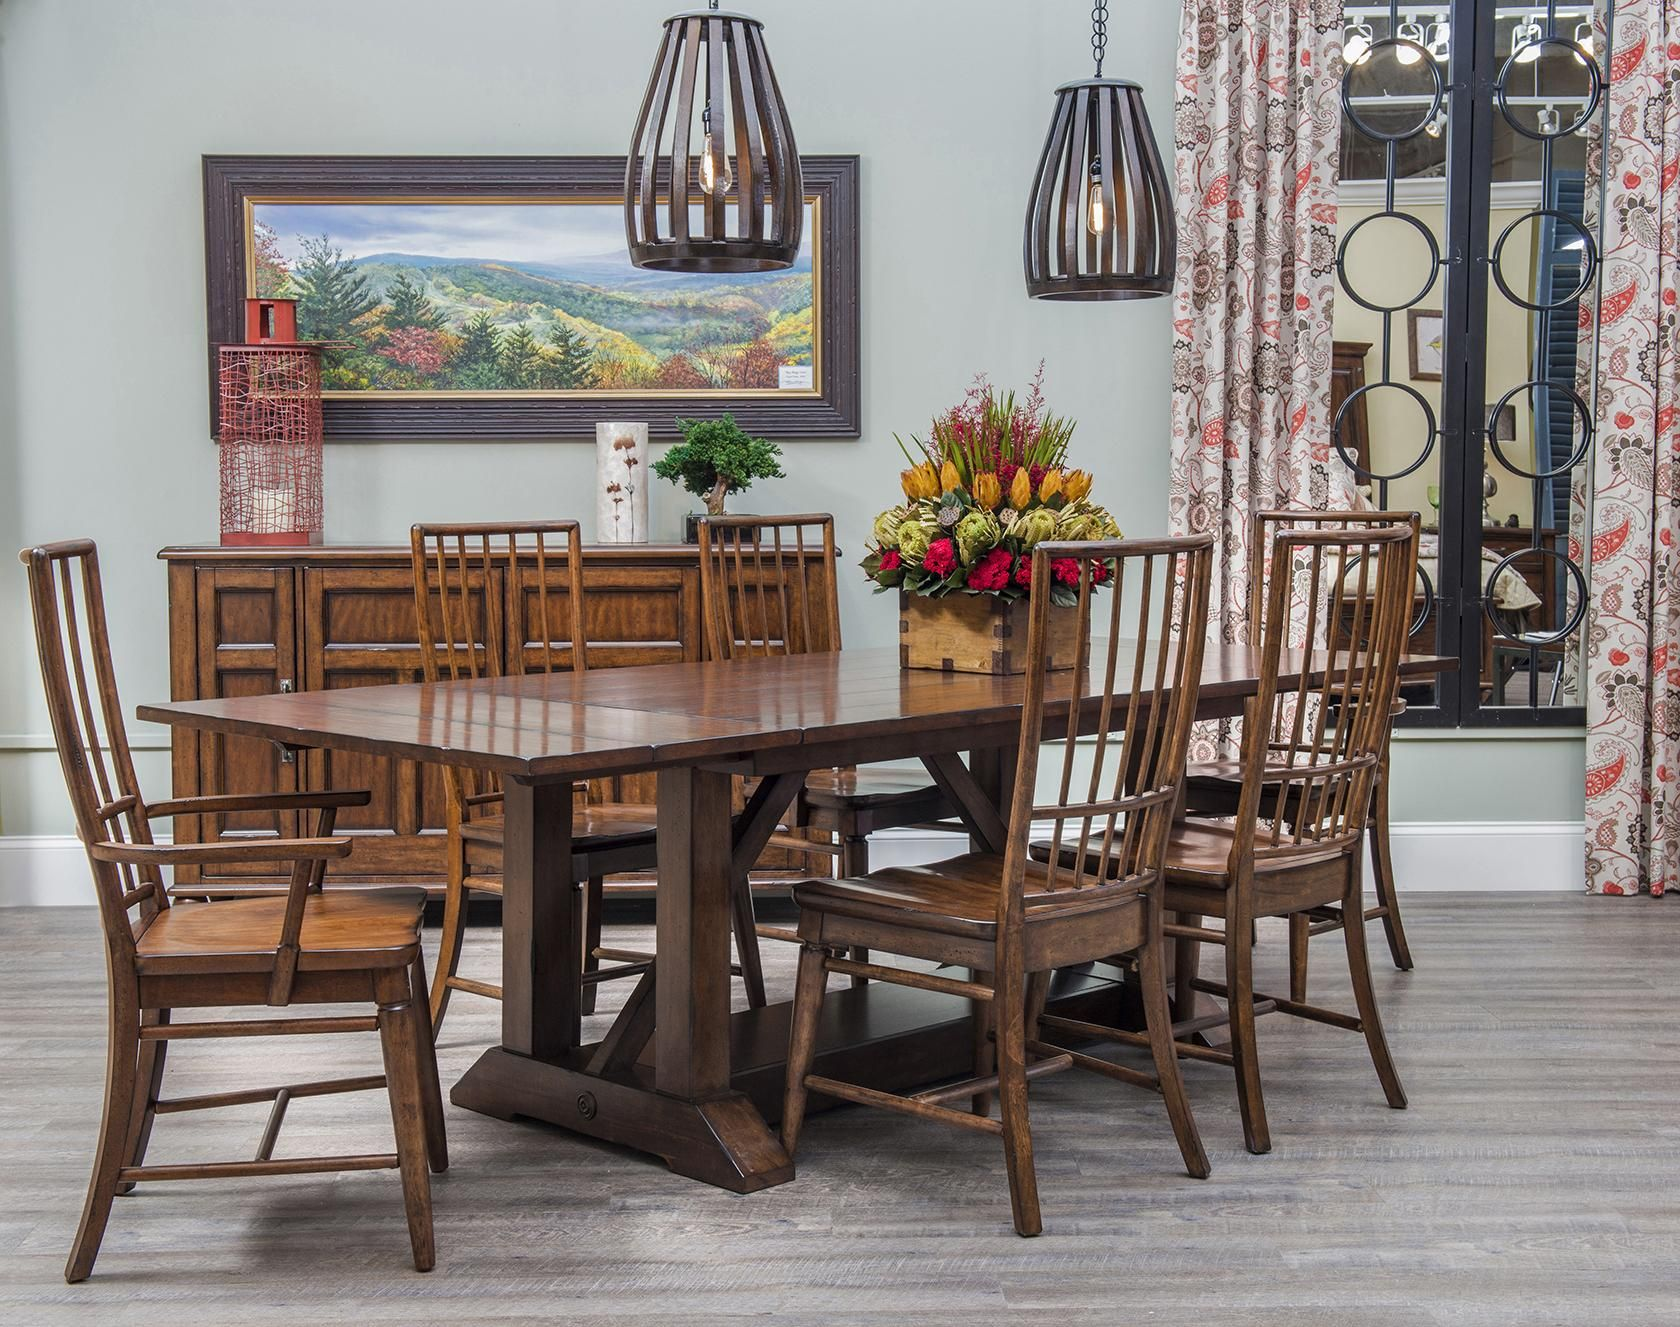 Pinmiller Brother's Furniture On Dining Rooms  Pinterest Awesome Dining Room Sets In Ct Design Inspiration